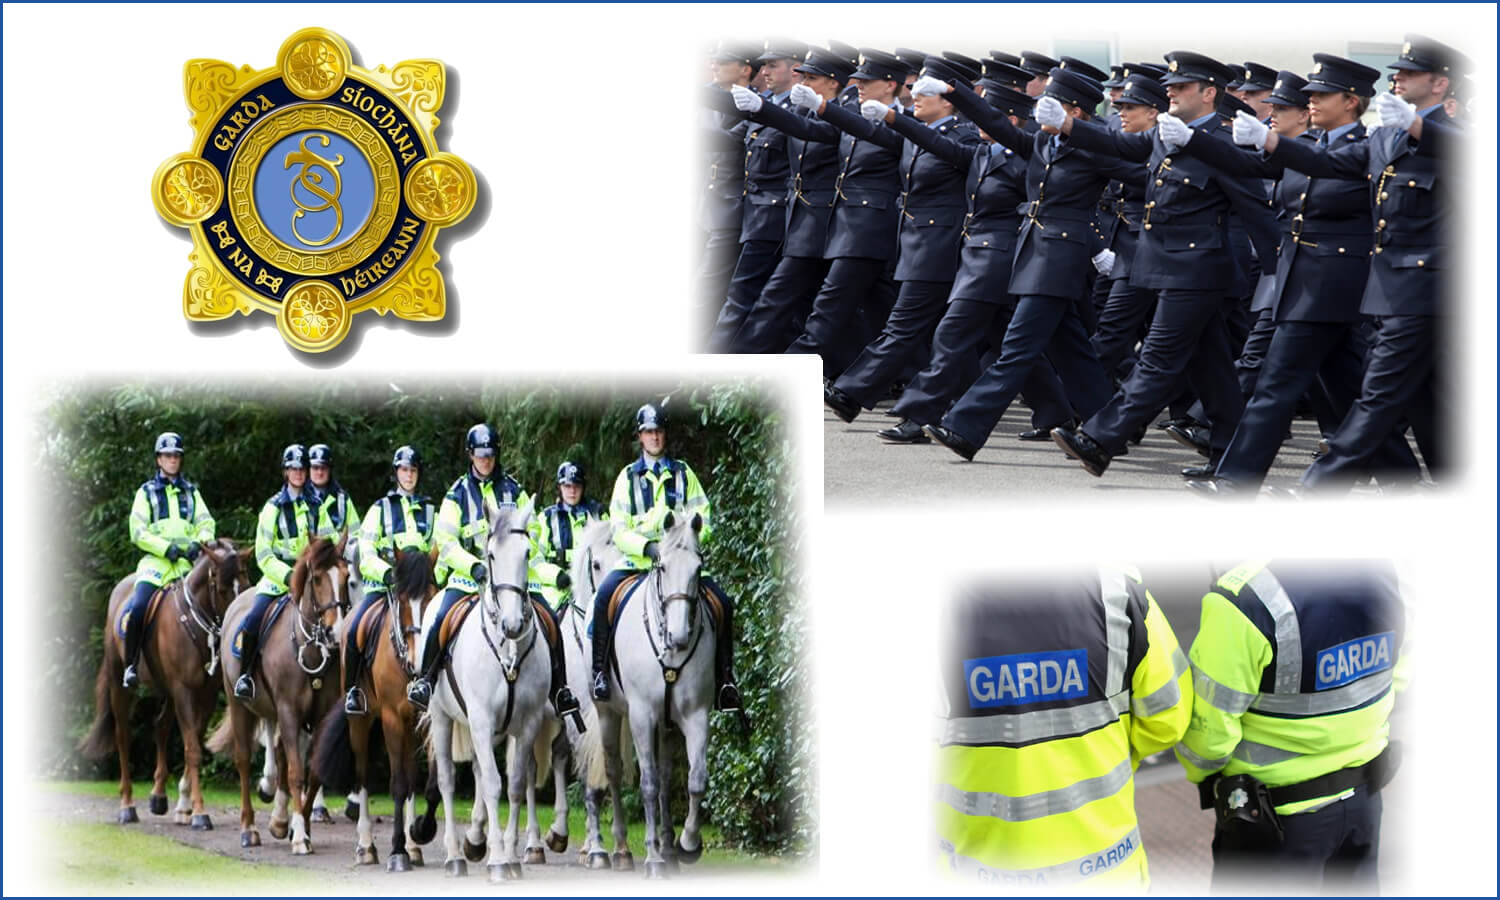 An Garda Síochána Parade and Awards Ceremony